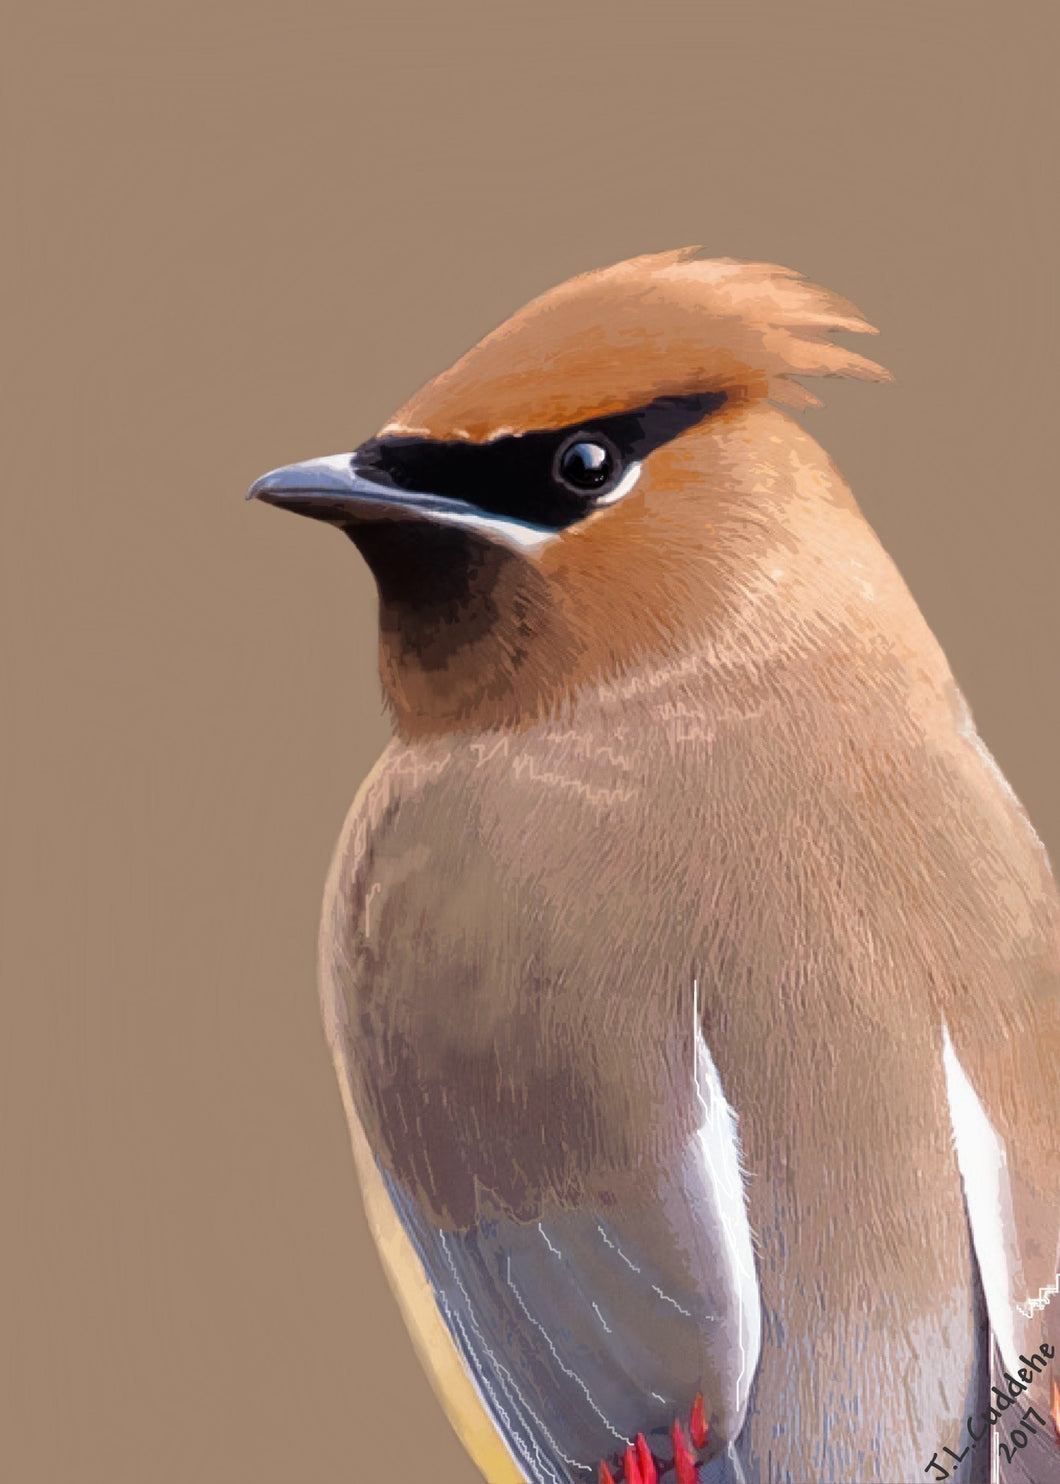 Ceder Waxwing portrait print by Judy Link Cuddehe for Found Link Press.